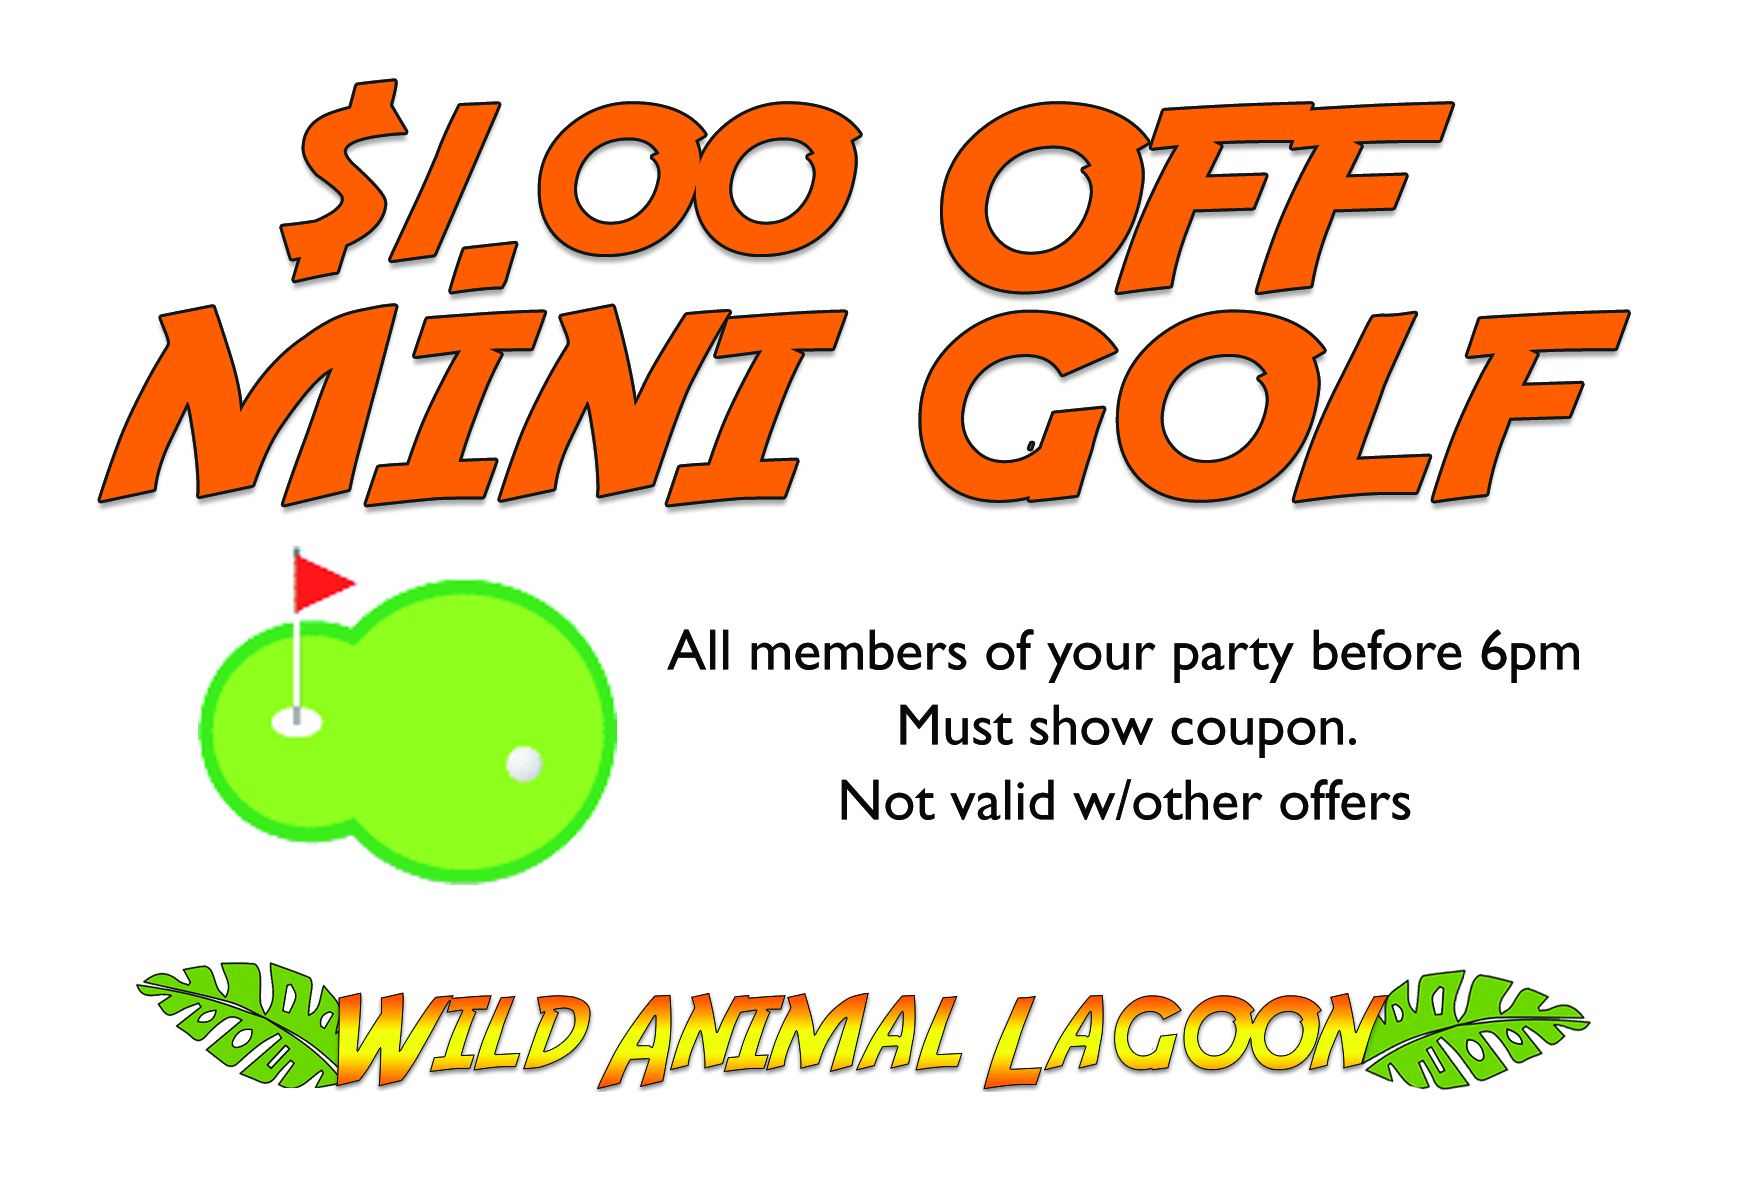 mini golf coupon.jpg